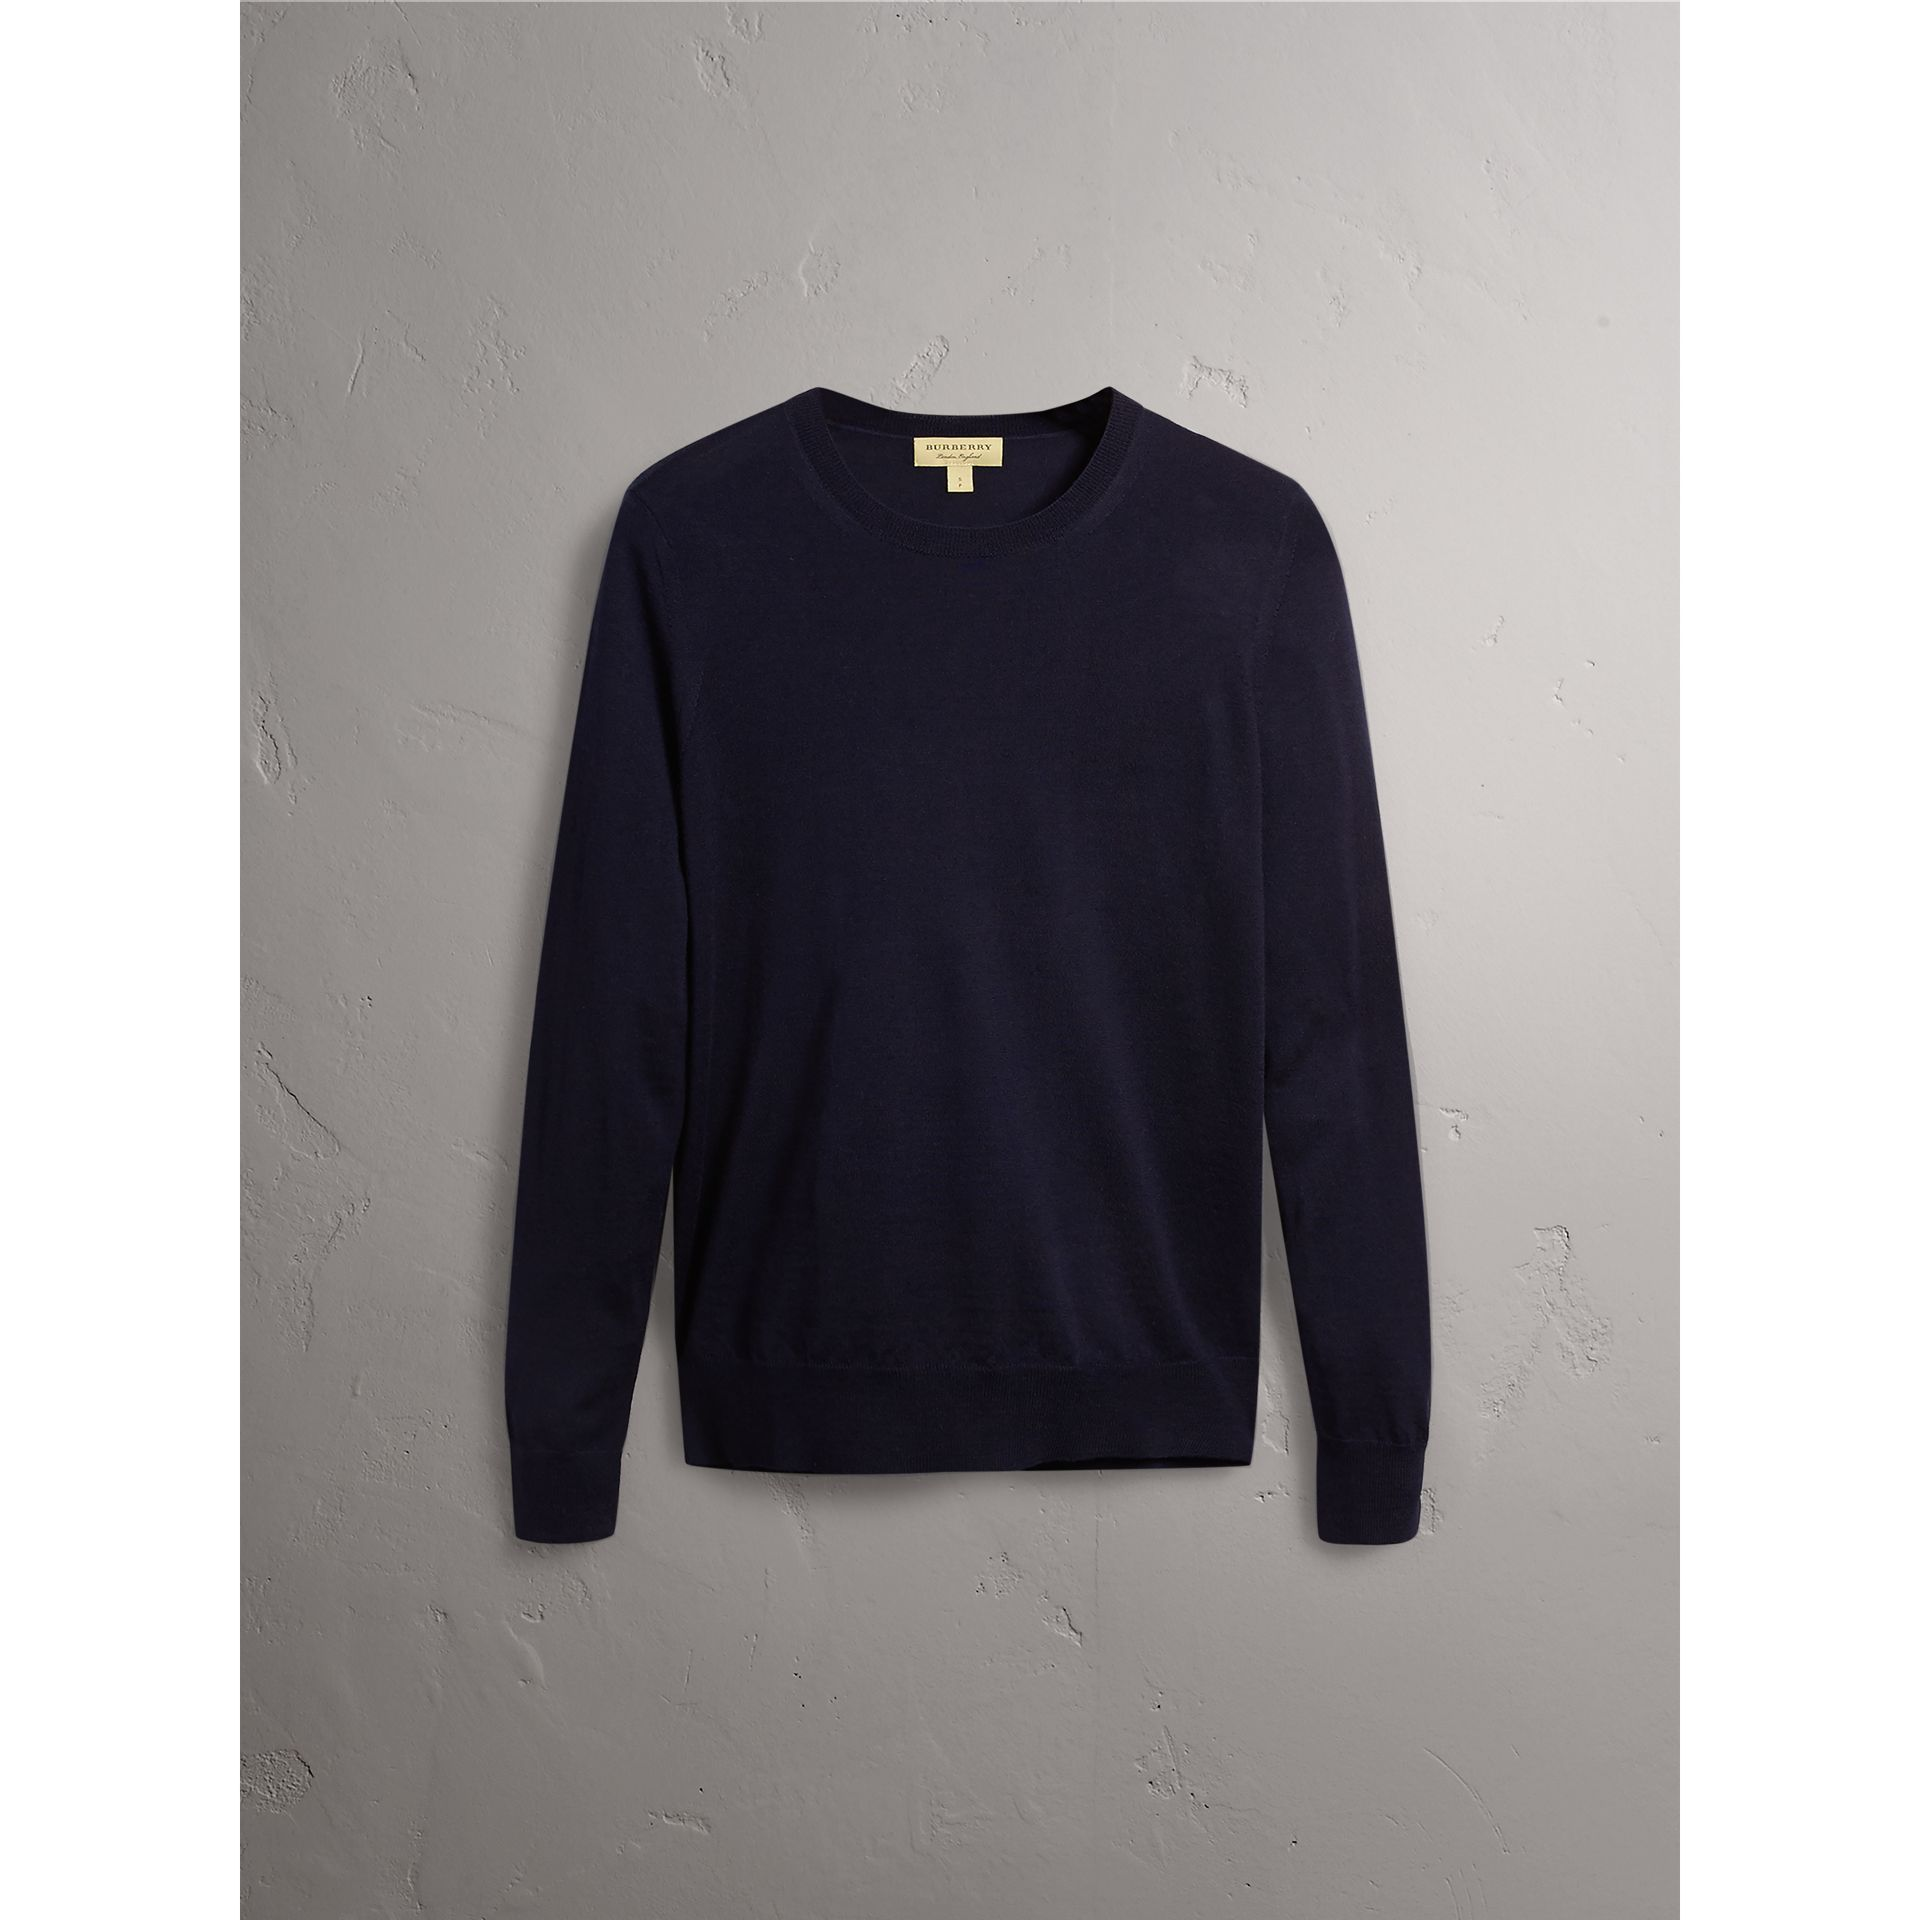 Check Detail Merino Wool Crew Neck Sweater in Navy - Women | Burberry United Kingdom - gallery image 3